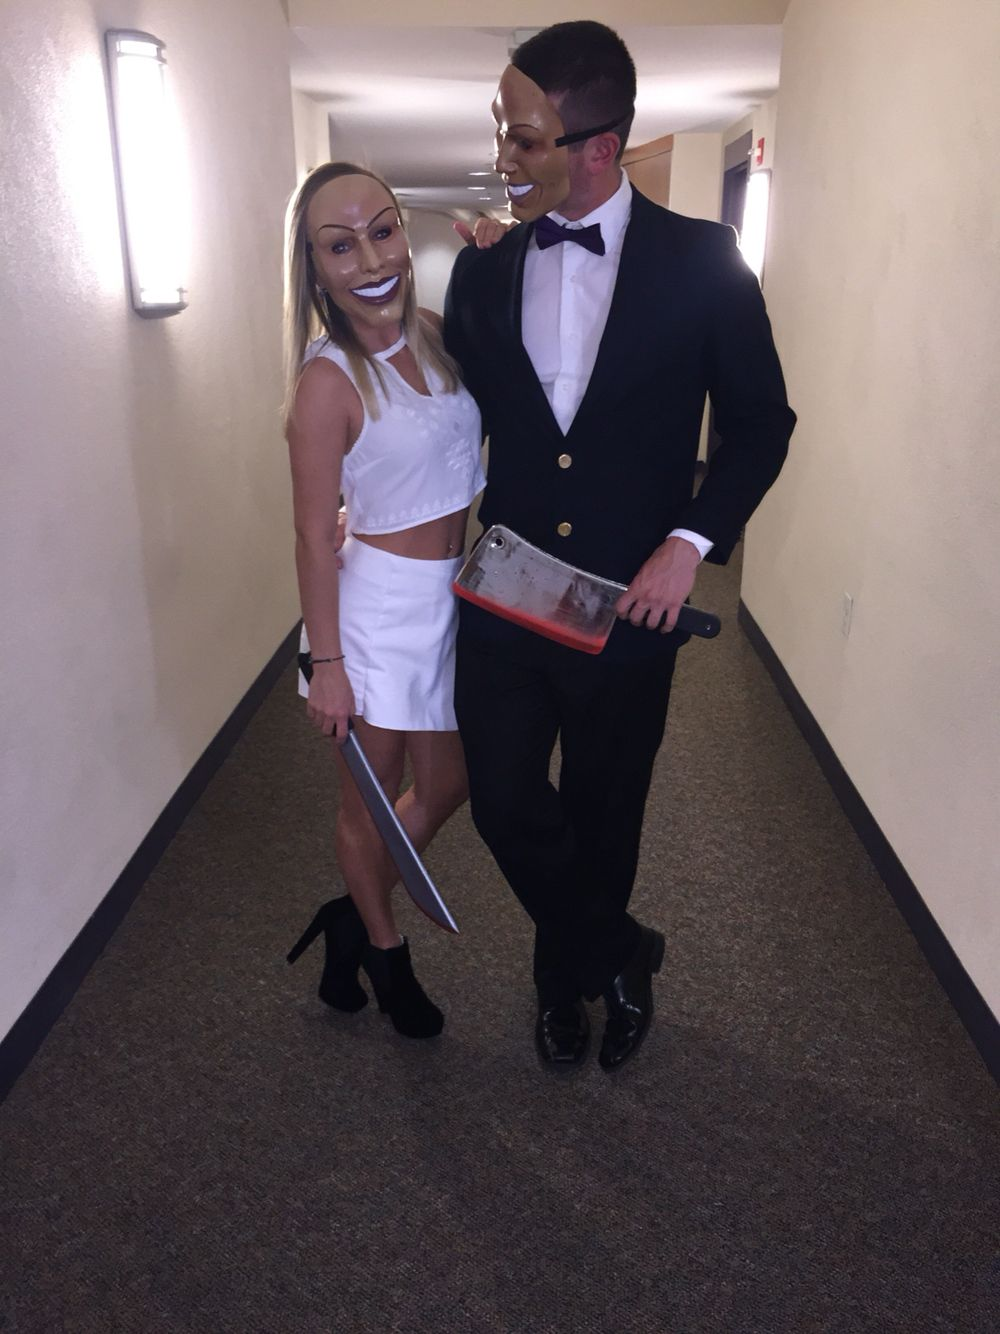 Couple Halloween Costume Idea The Purge | Fashion | Pinterest ...